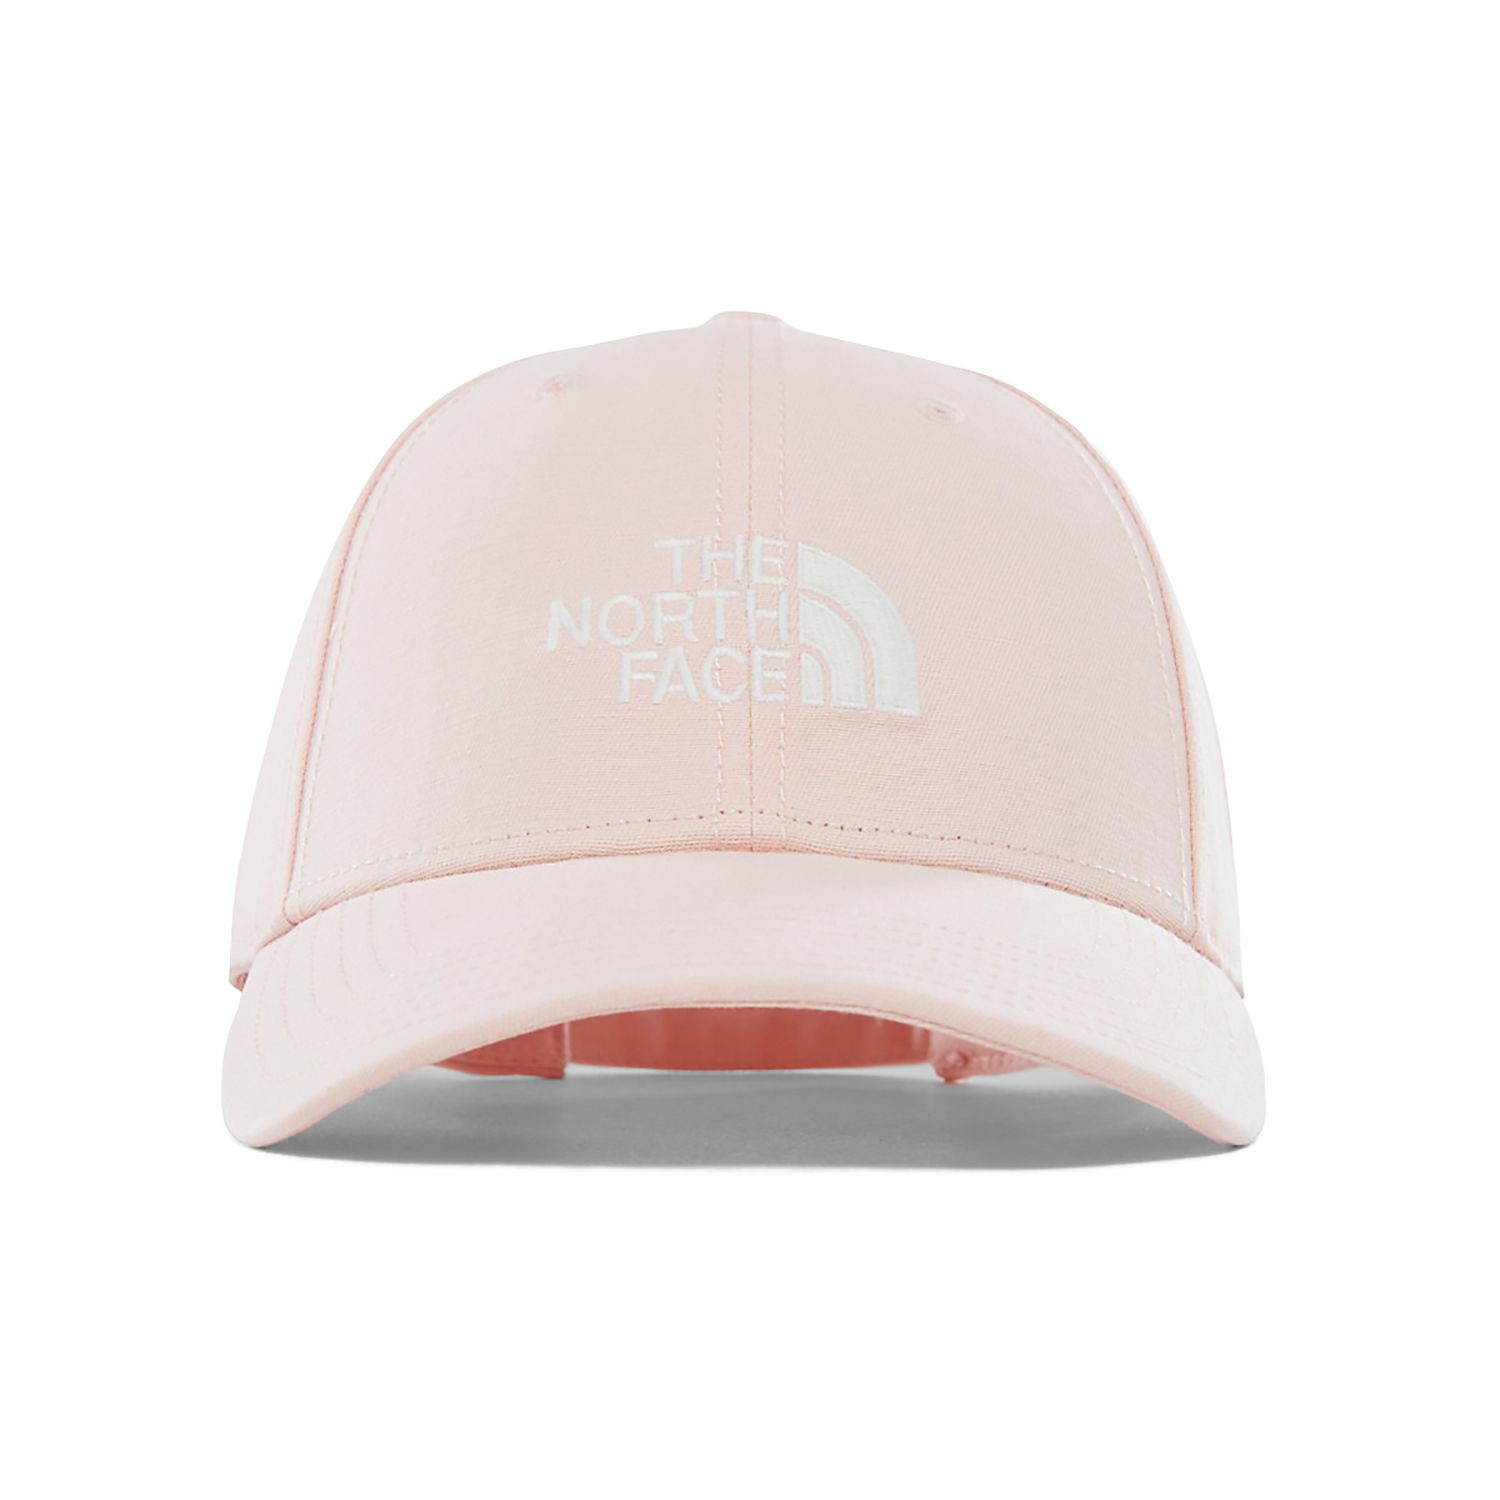 THE NORTH FACE 66 CLASSIC HAT (9000007012_32941)